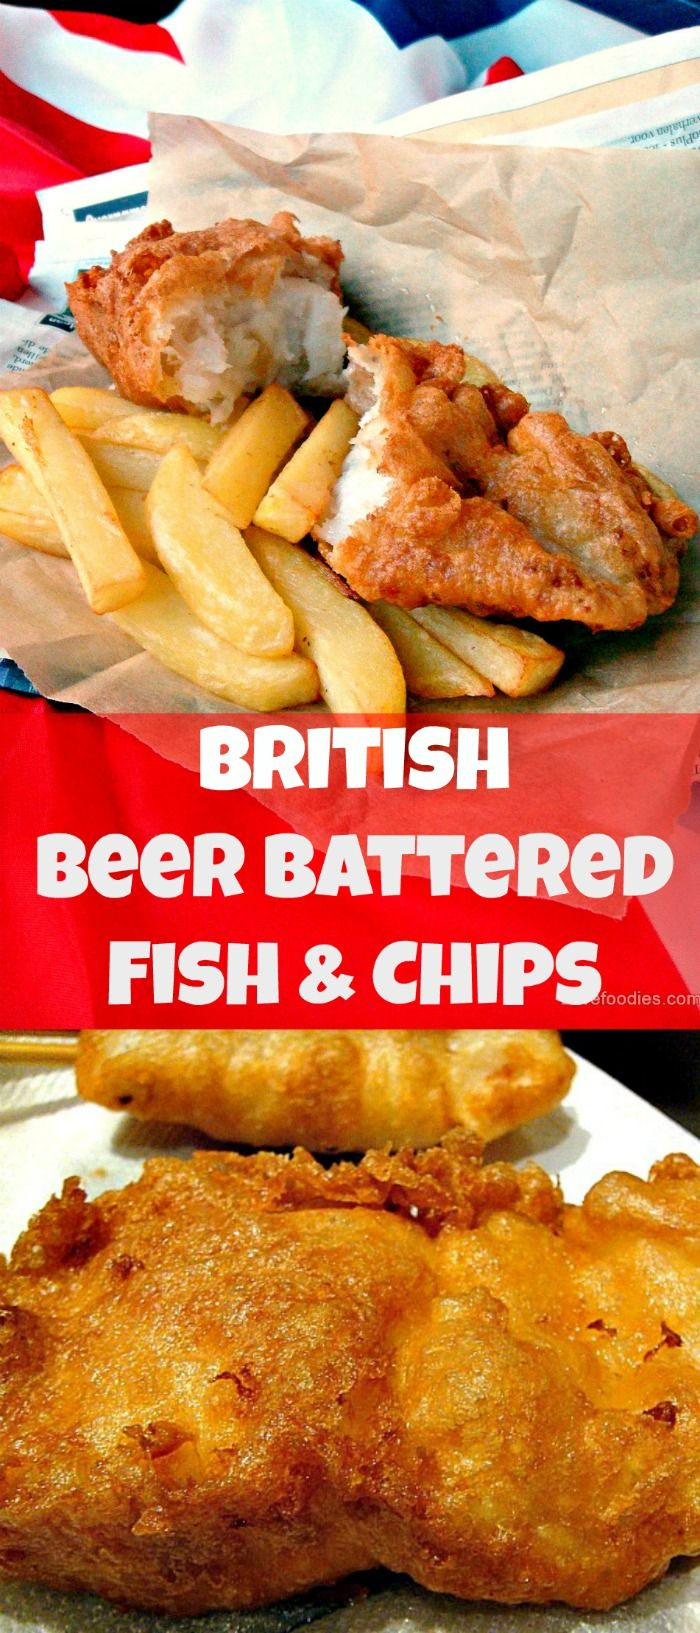 The 25 best fish and chips ideas on pinterest fish for Best fish and chips near me